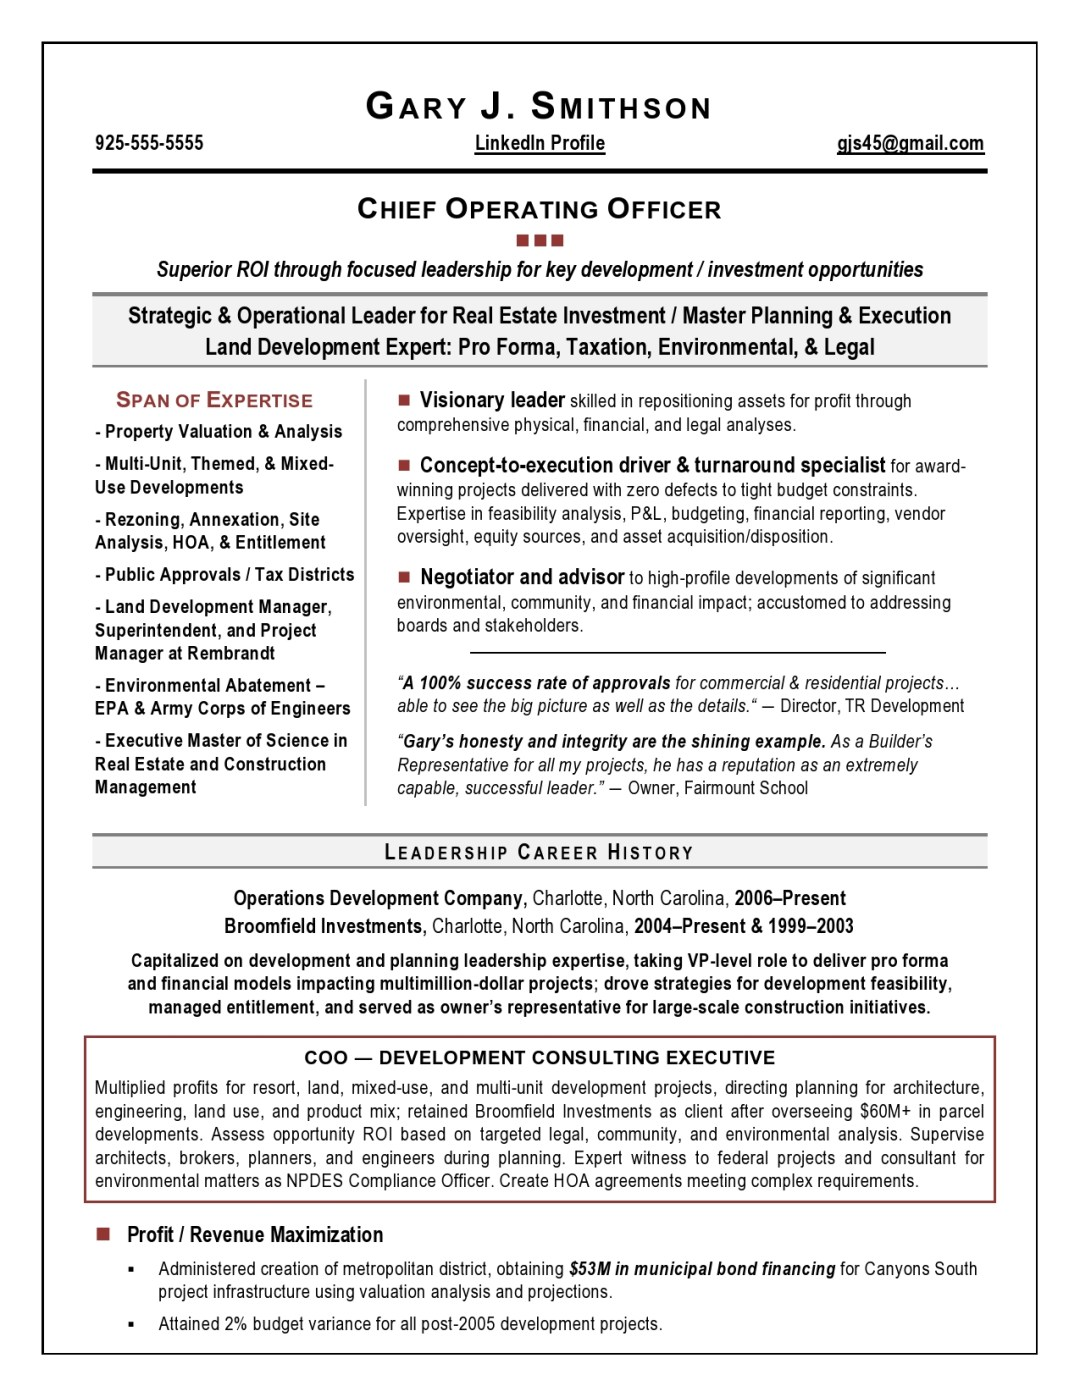 COO Resume Sample Page 1